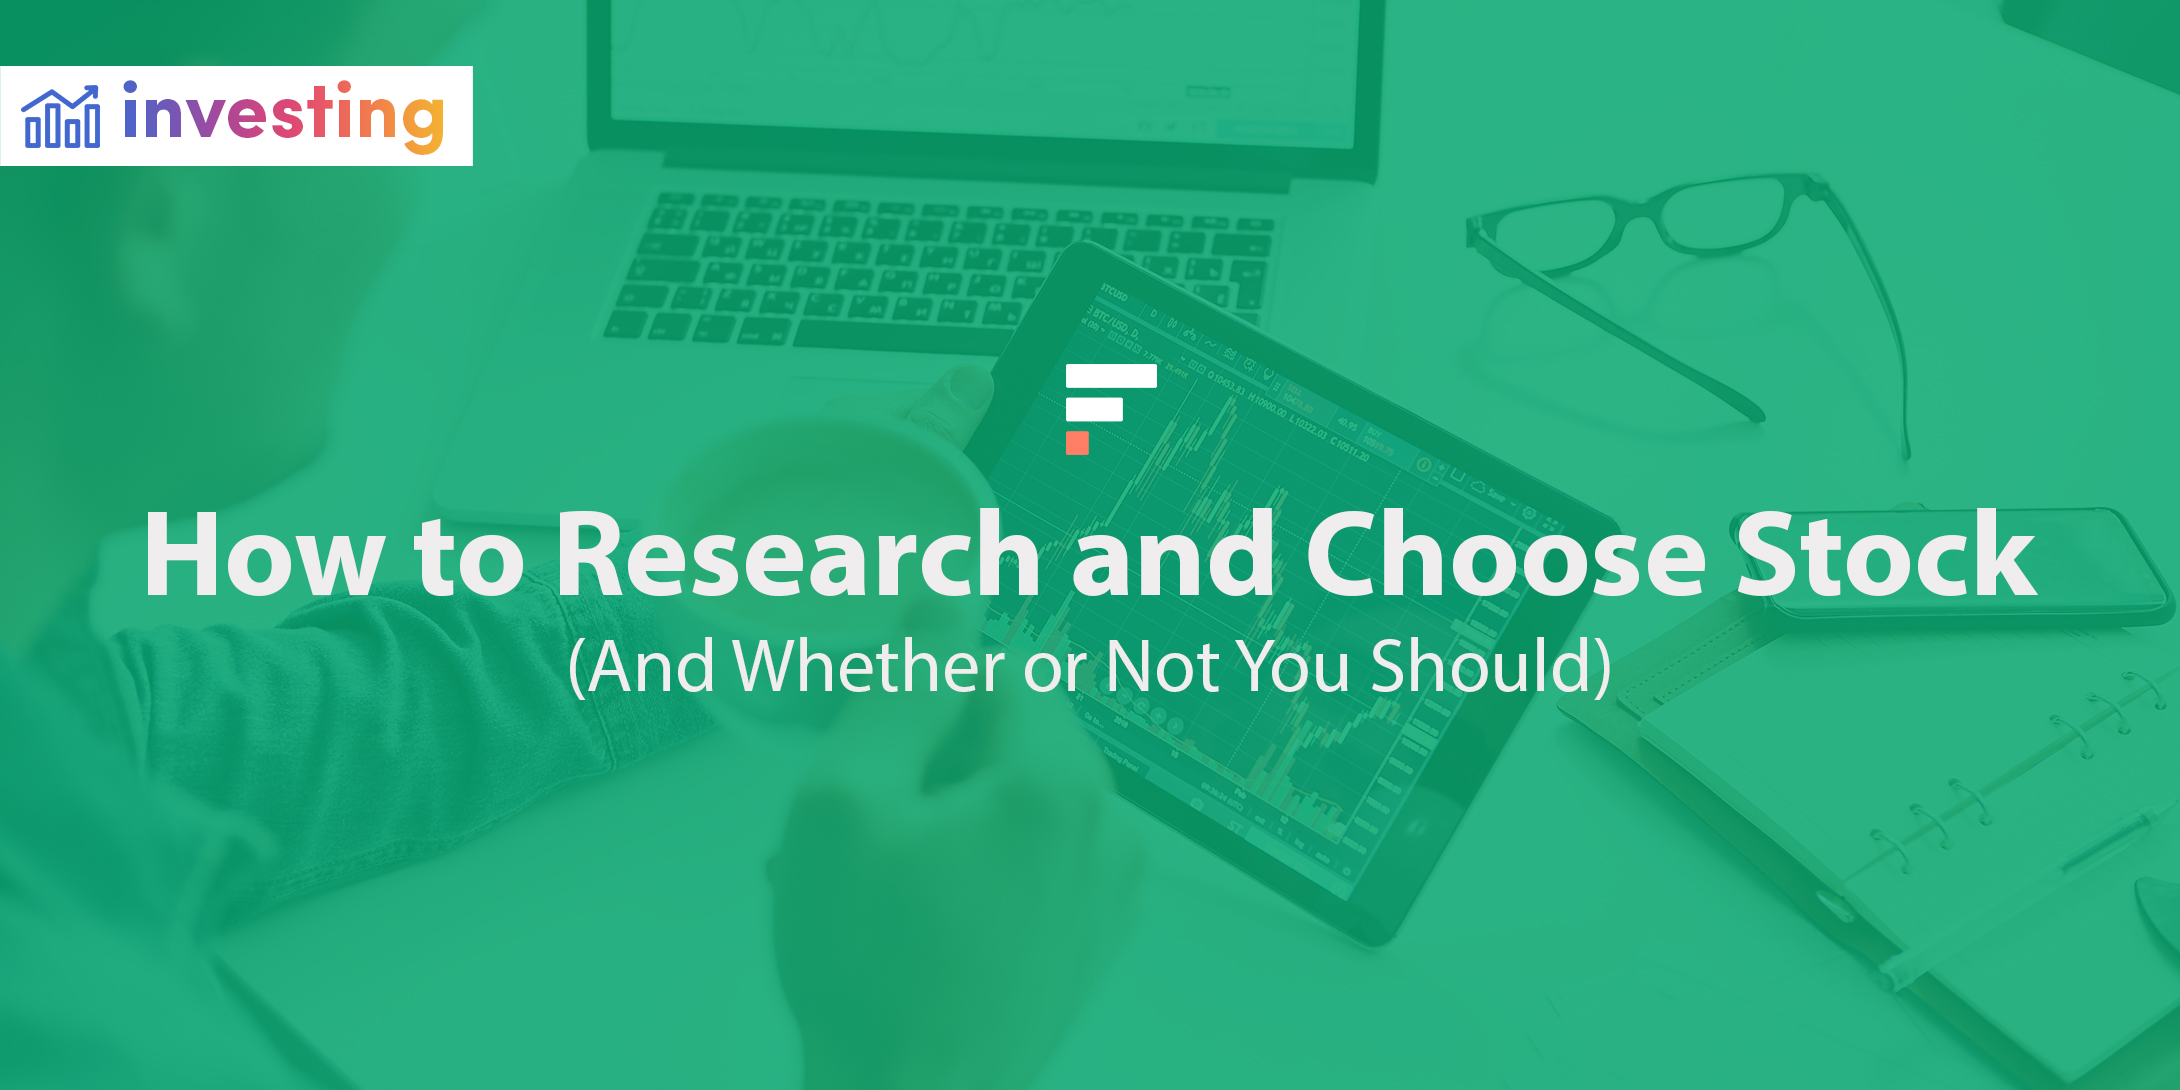 How to Research and Choose Stock (And Whether or Not You Should)